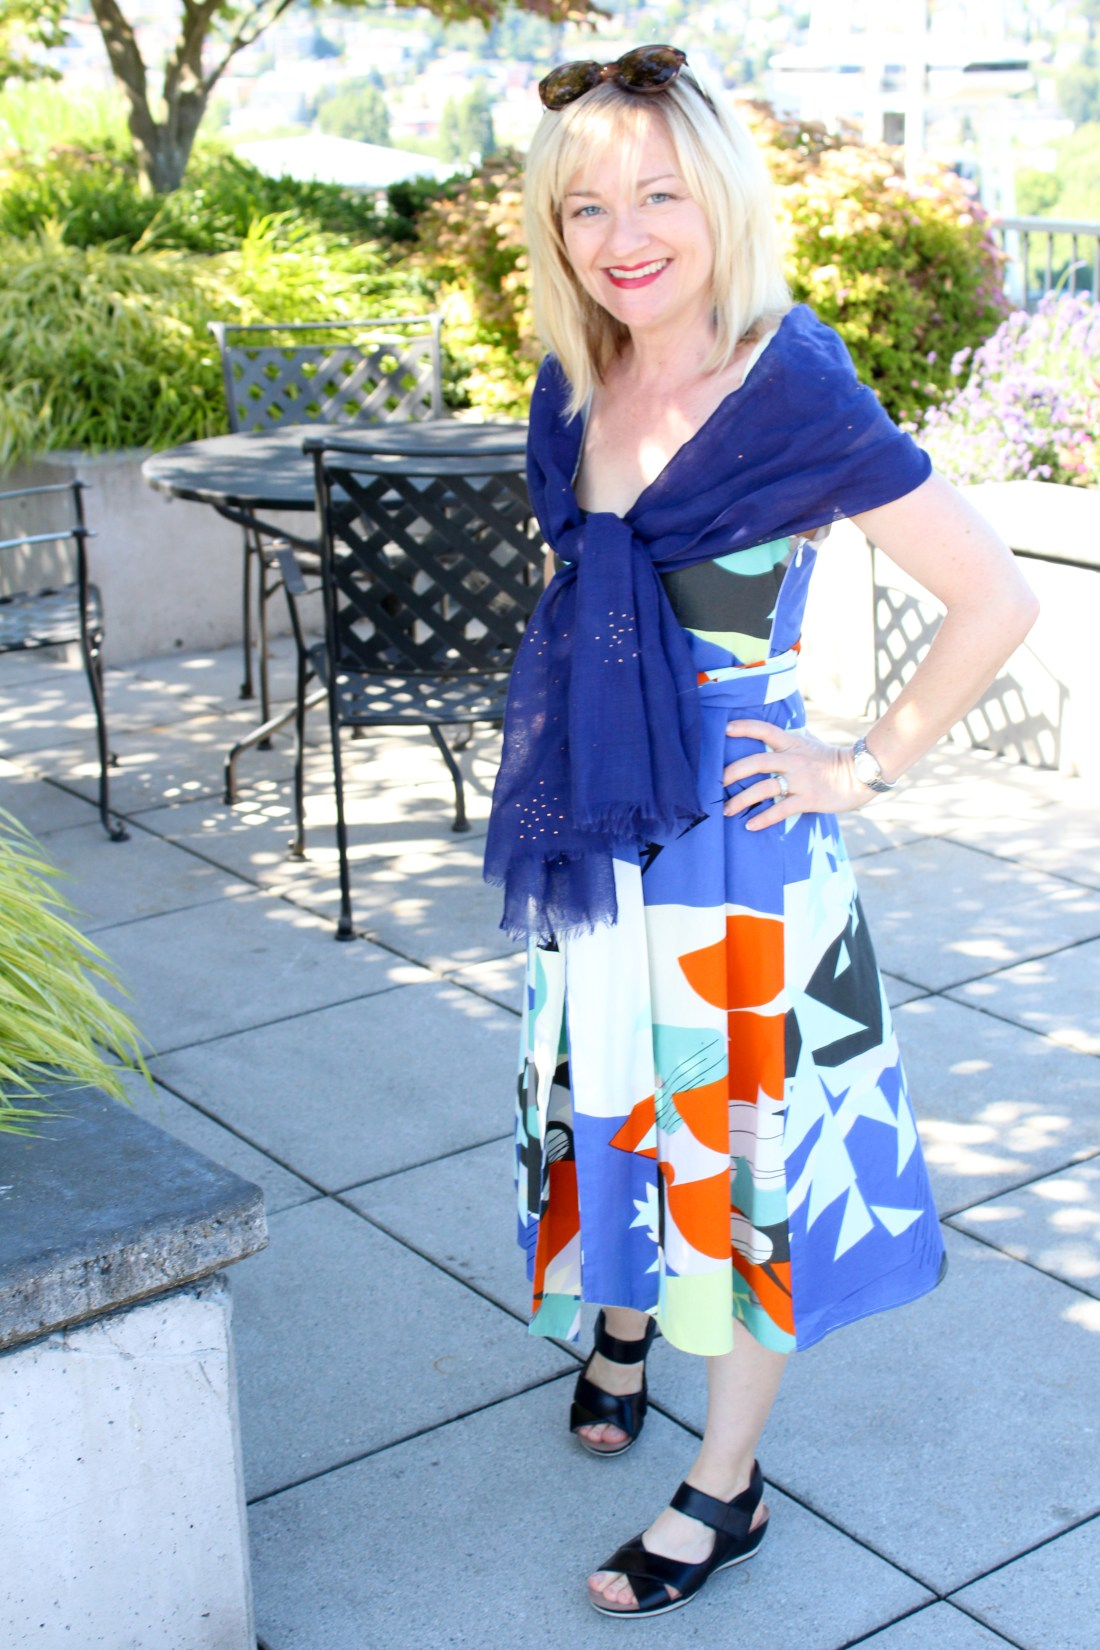 marimekko dress with blue scarf, sandals, and sunglasses